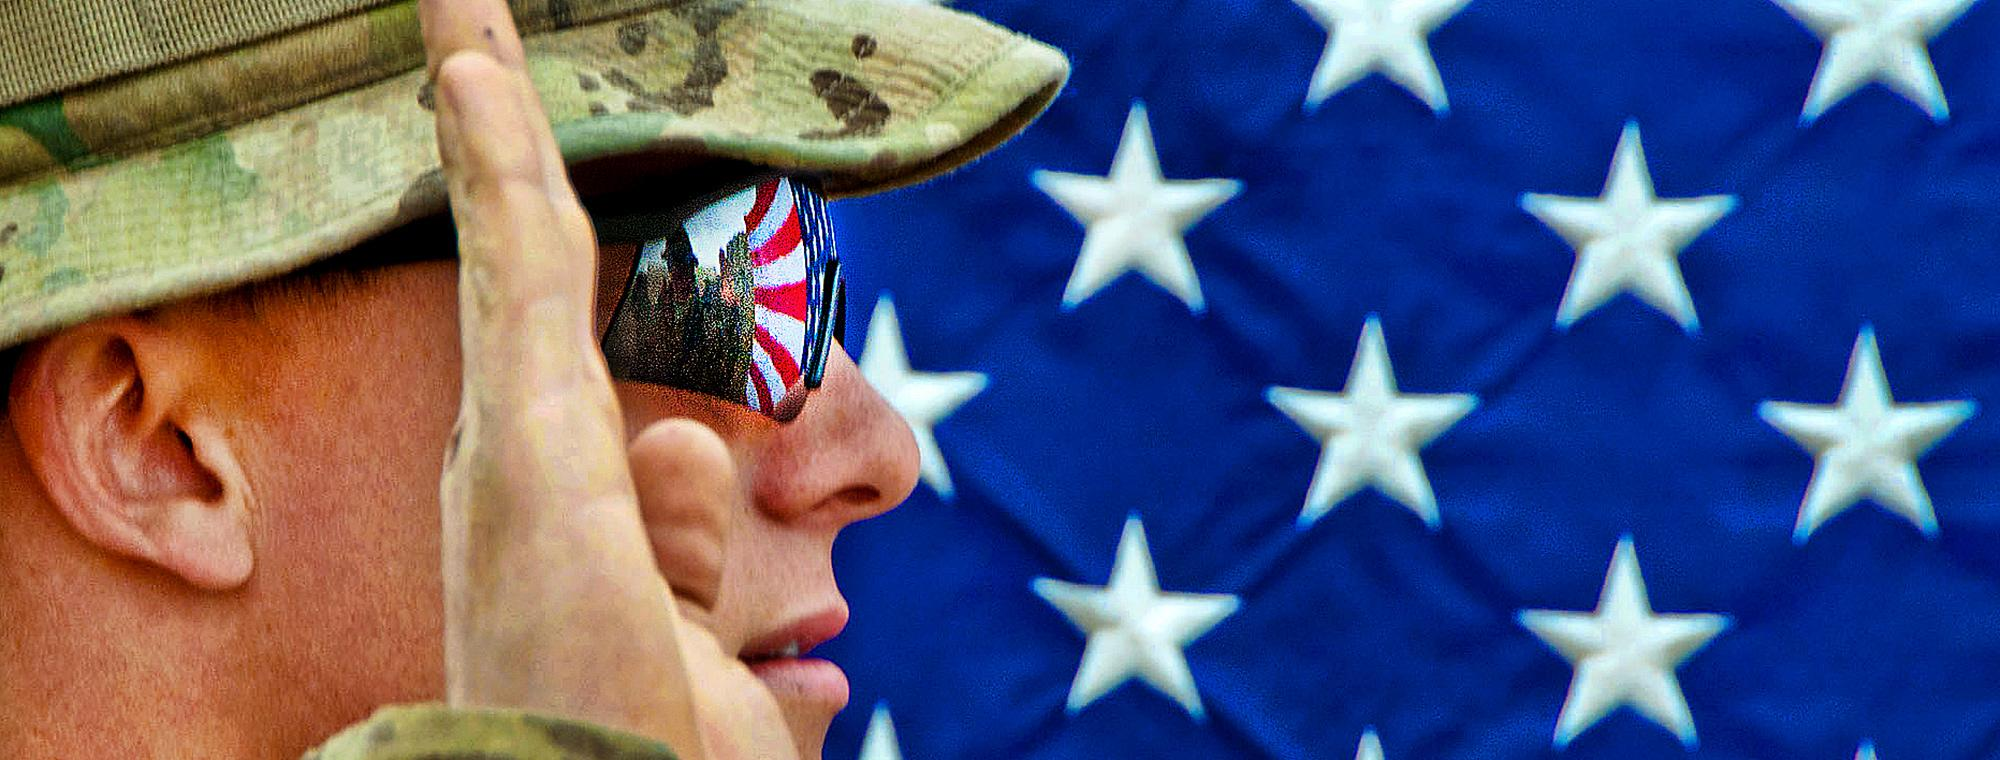 The American flag reflects in the glasses of an U.S. Army officer as he reenlists as a paratrooper on Combat Outpost Qara Baugh in Afghanistan's Ghazni province, April 22, 2012. The soldier is assigned to the 82nd Airborne Division's 1st Brigade Combat Te